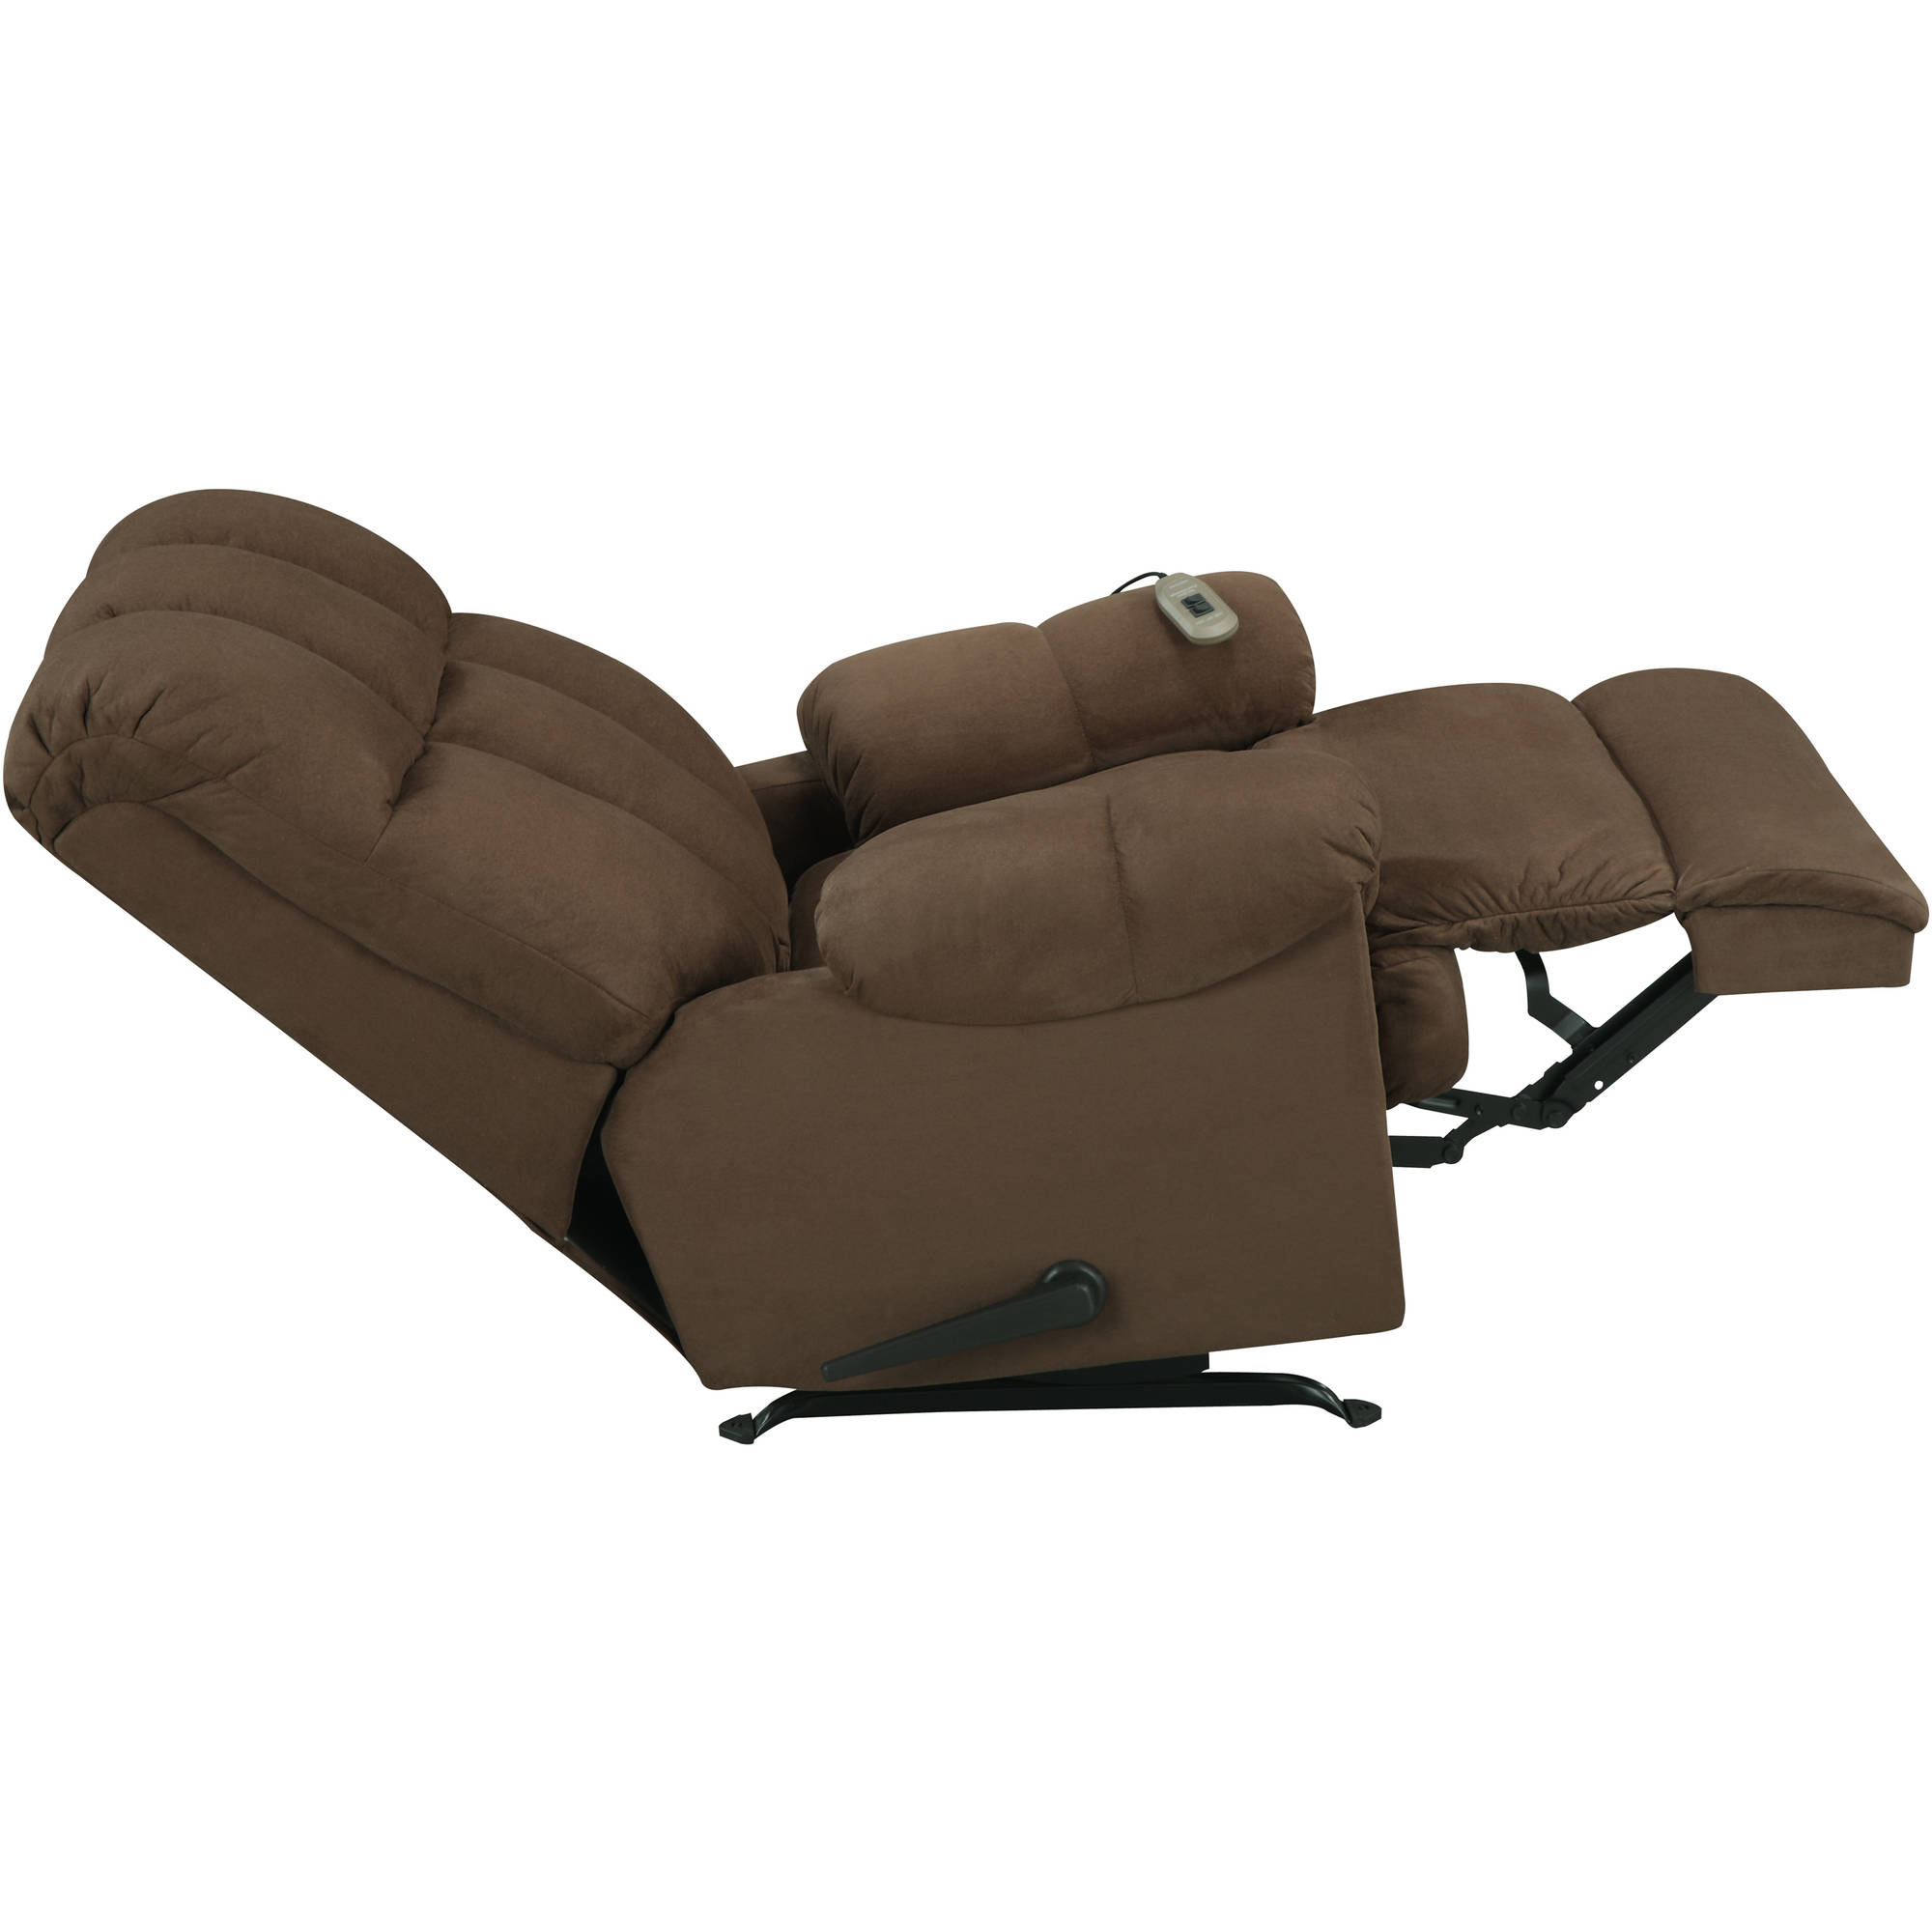 Reclining Rocking Chair Dorel Living Padded Massage Rocker Recliner Multiple